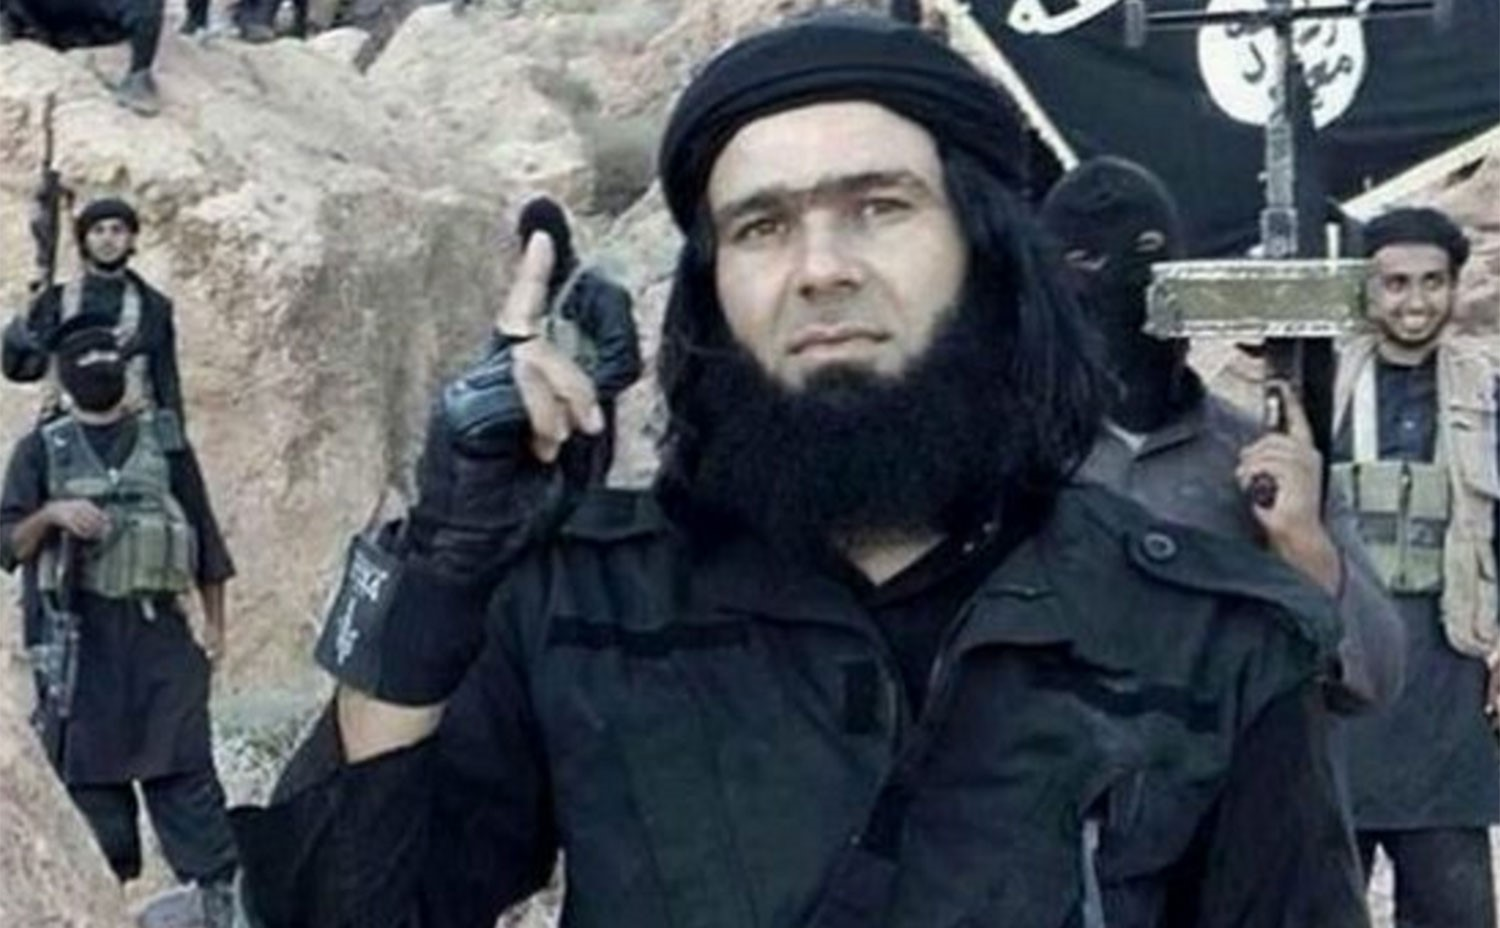 Top ISIS Leader, Executioner Abu Wahib Killed in Iraq